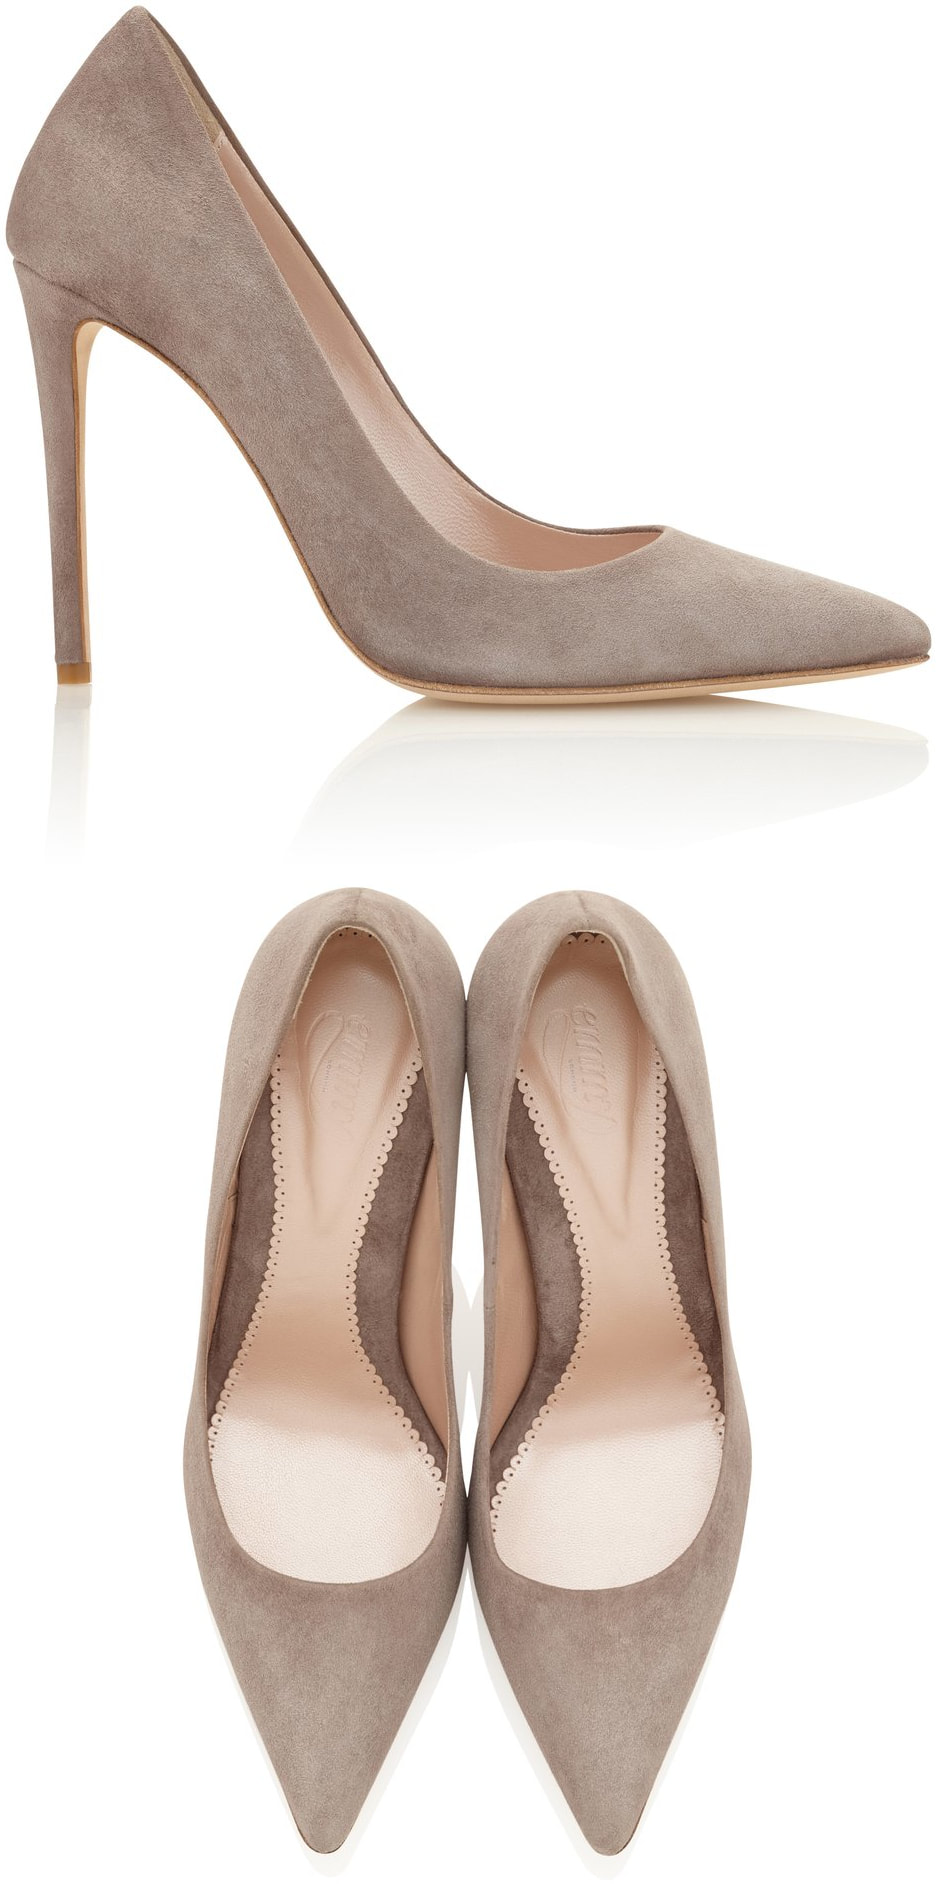 Emmy London Rebecca courts in Cinder suede